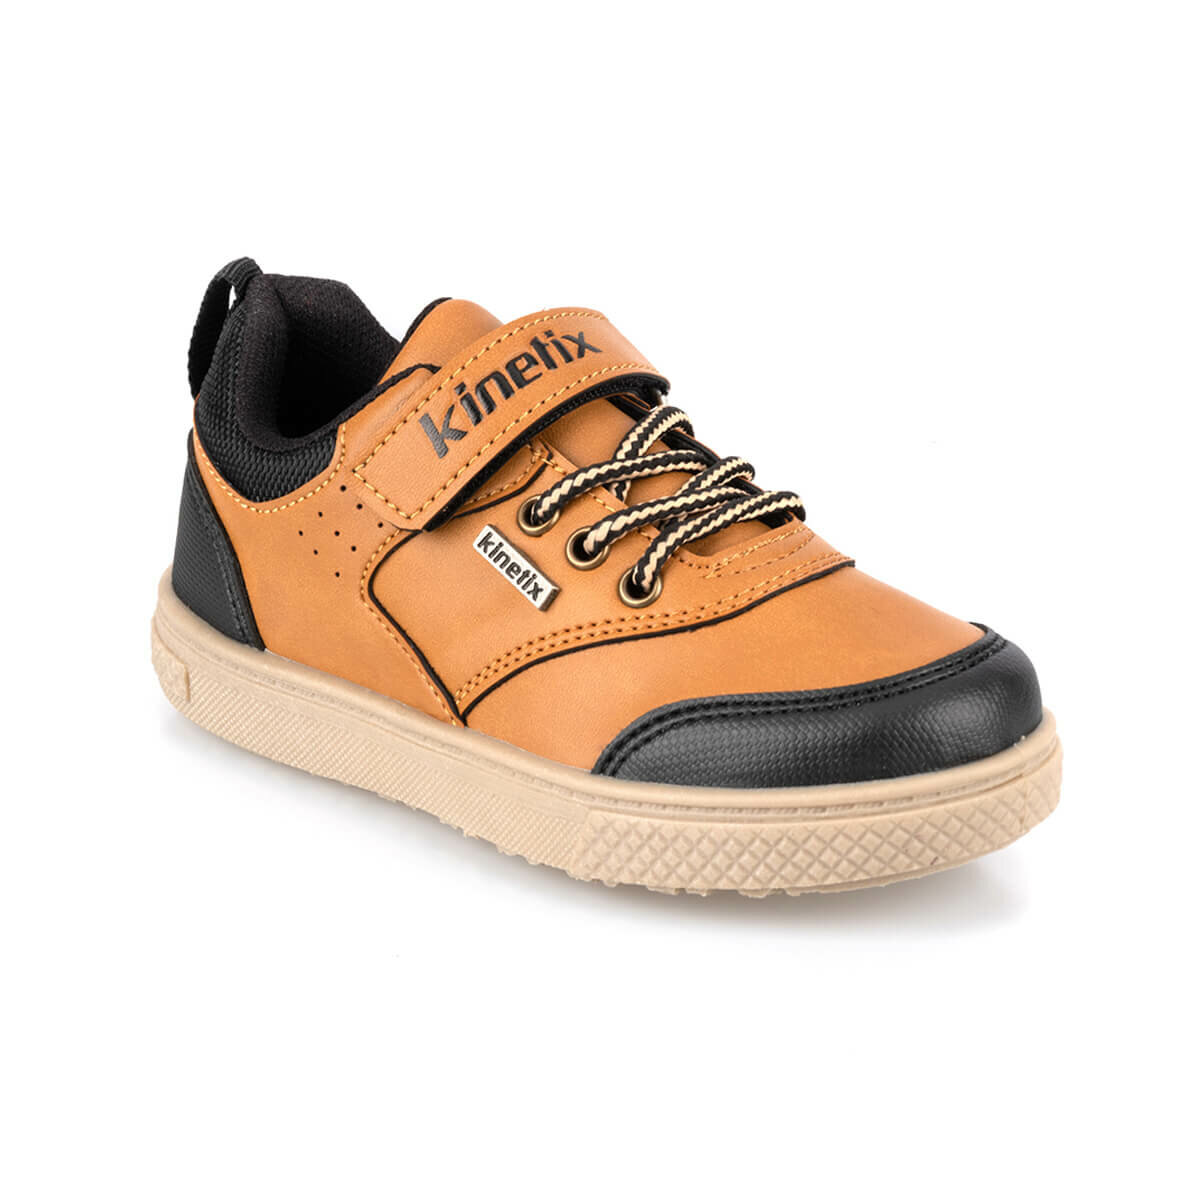 FLO PORCIN 9PR MELON Male Child Sneaker Shoes KINETIX